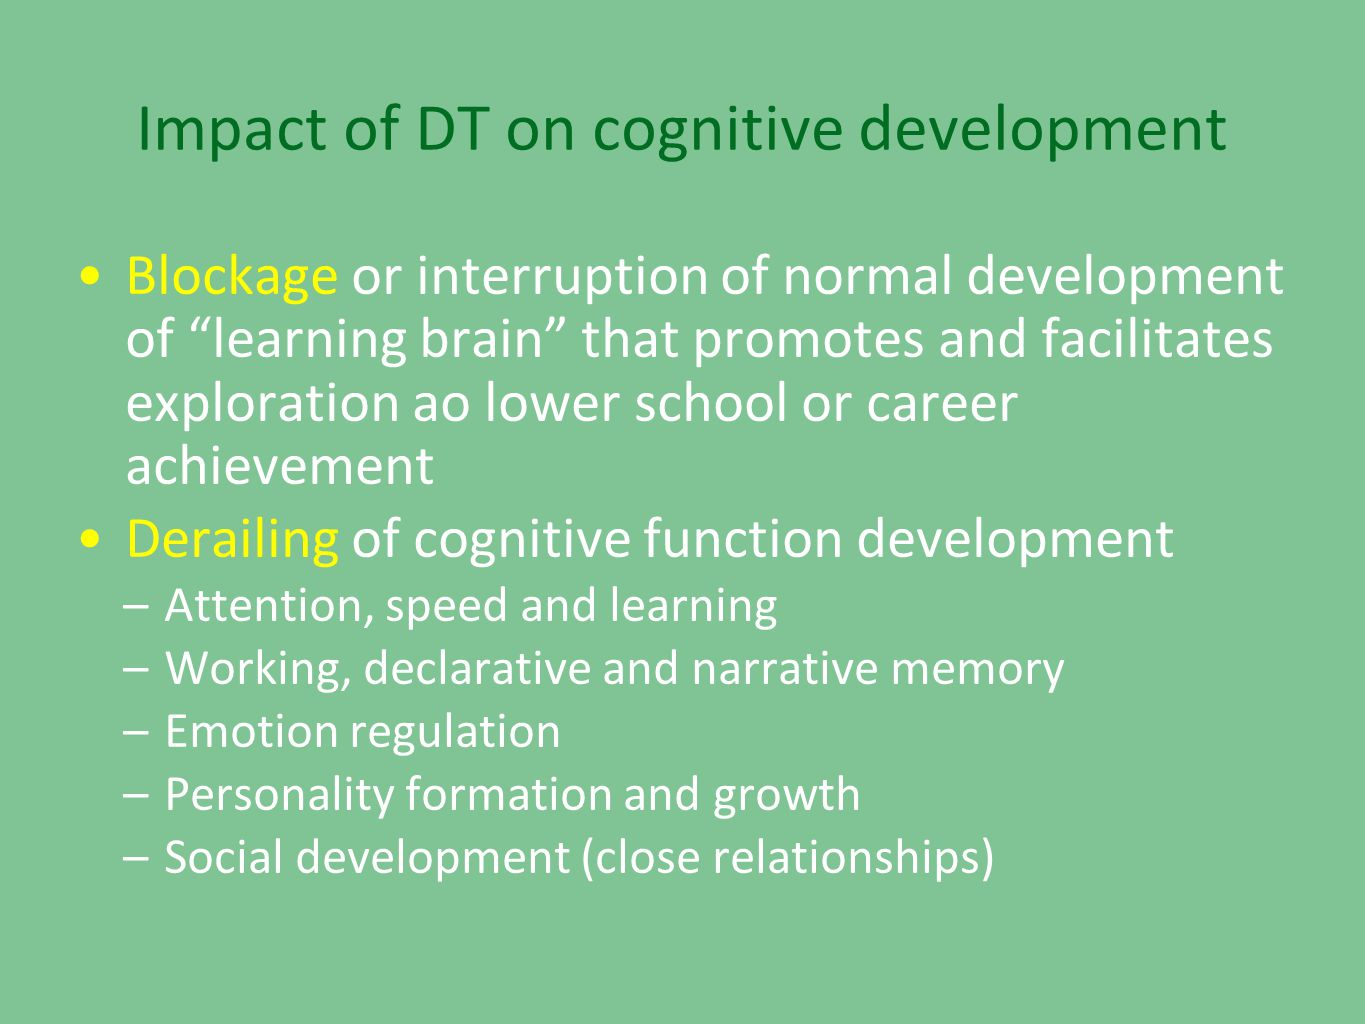 Impact of DT on cognitive development